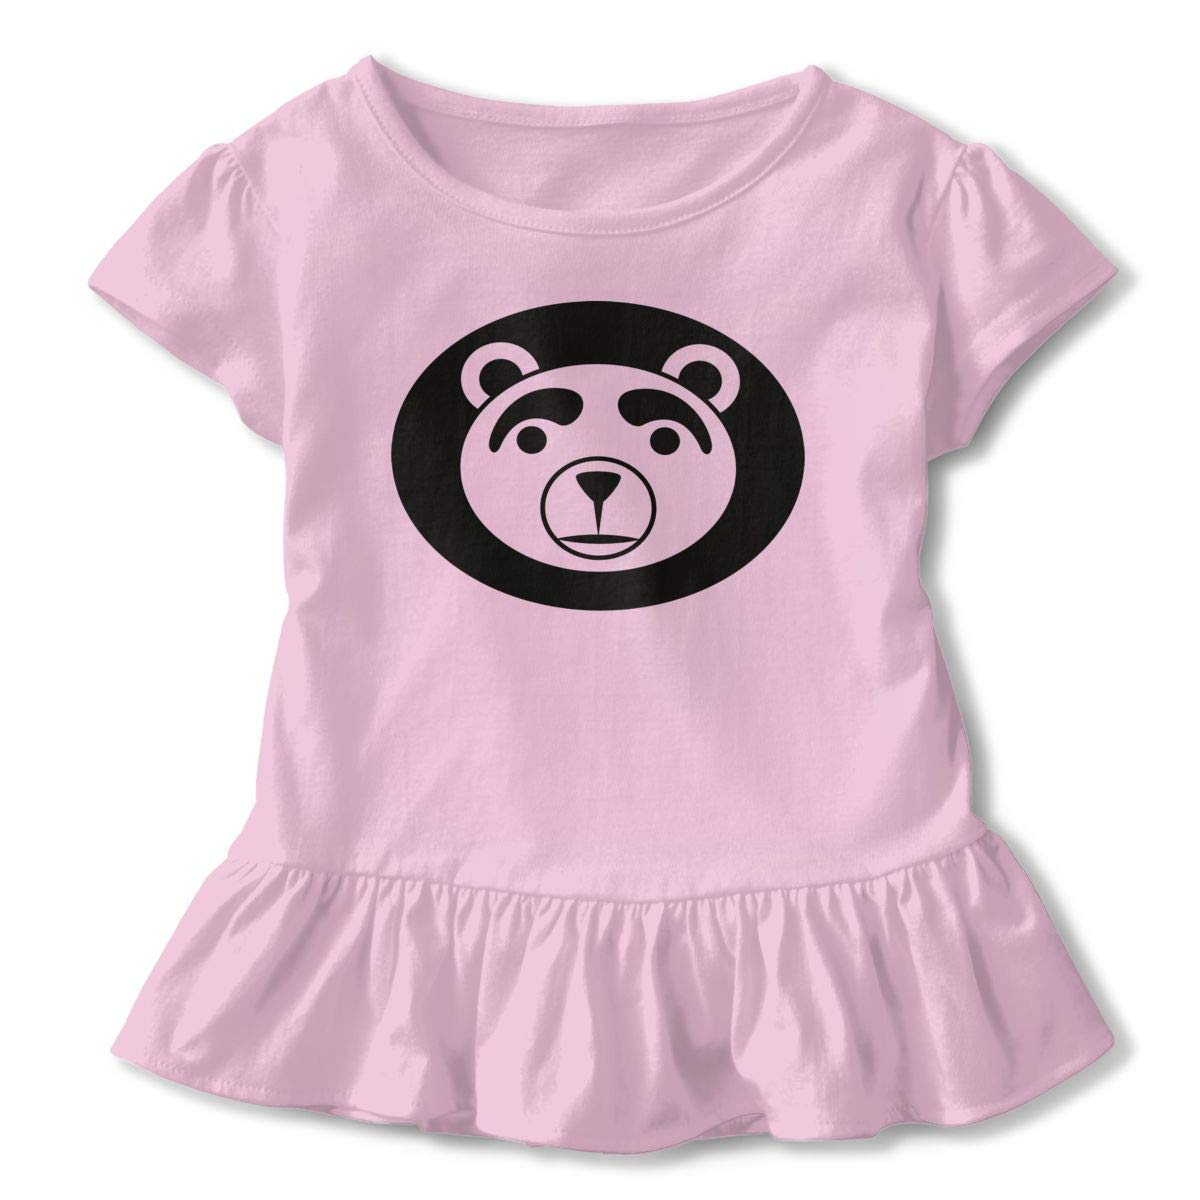 JVNSS American Black Bear Shirt Design Toddler//Infant Flounced T Shirts Outfits for 2-6T Baby Girls